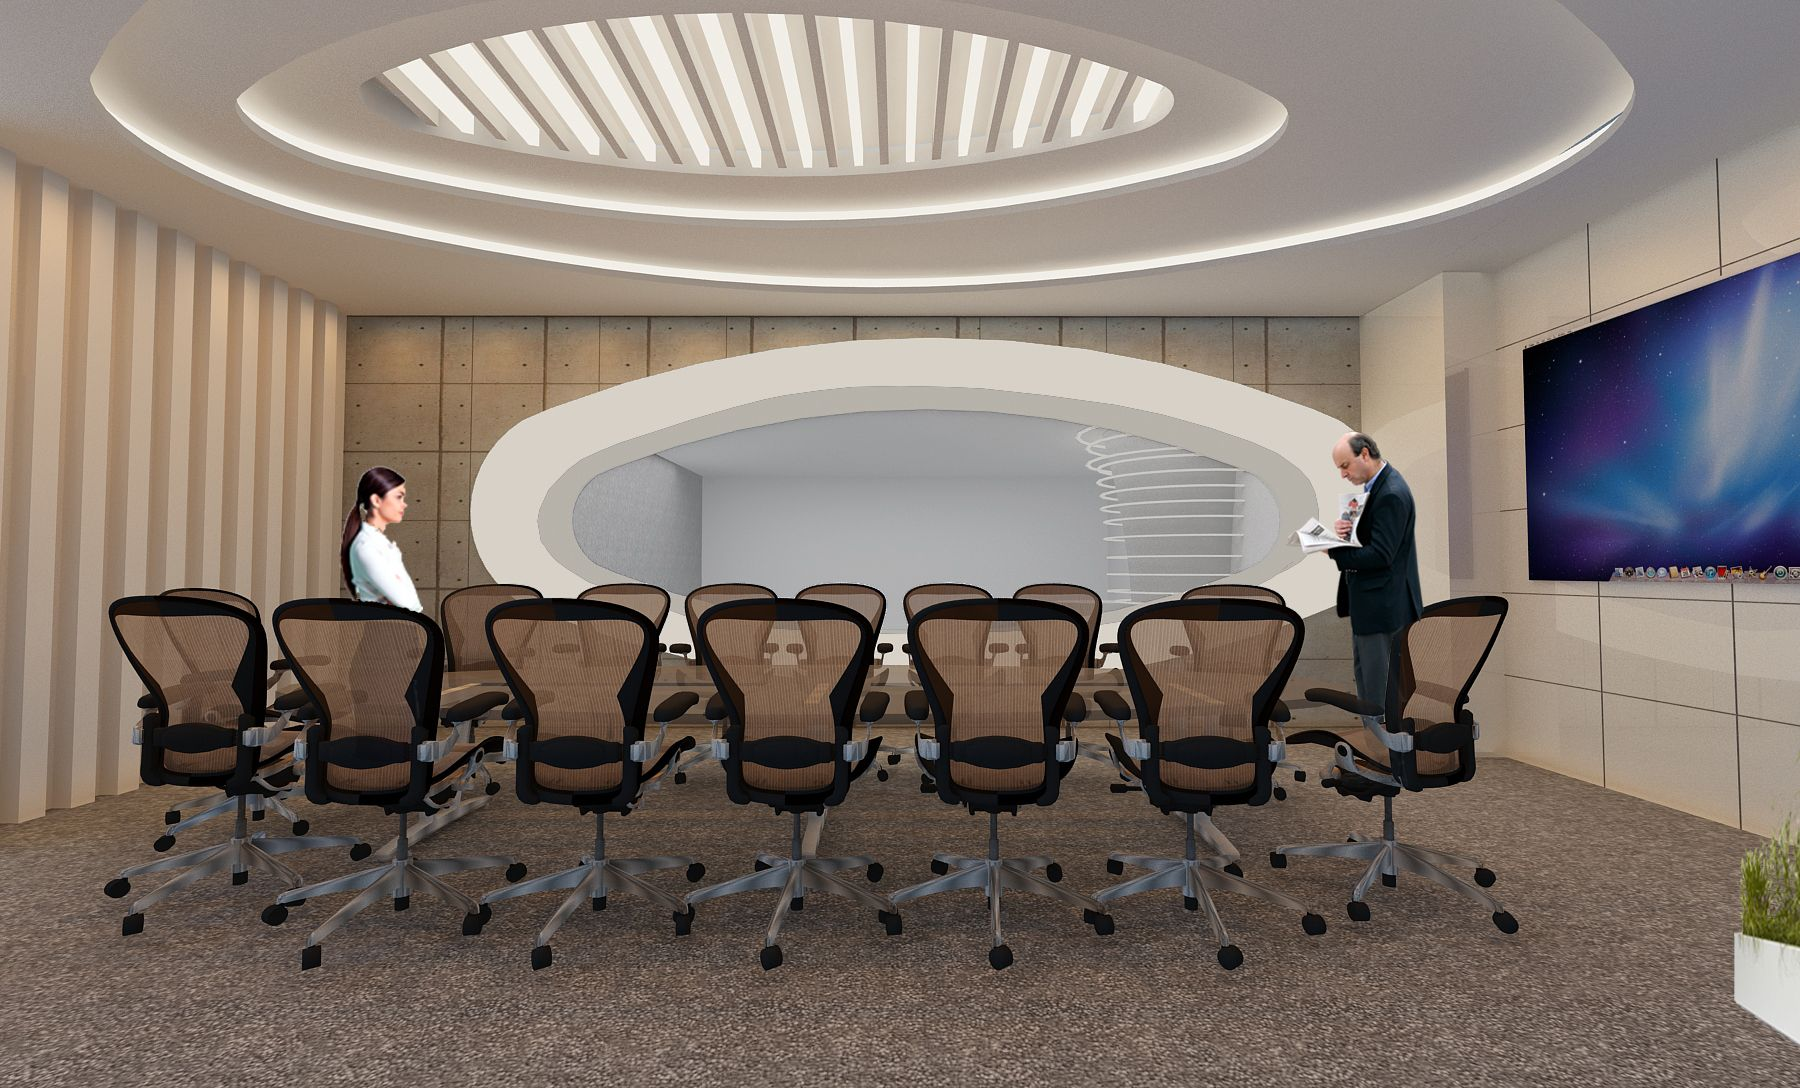 Interior design of spacious meeting rooms or conference by  studio interiors also pin on architects and designiners rh pinterest